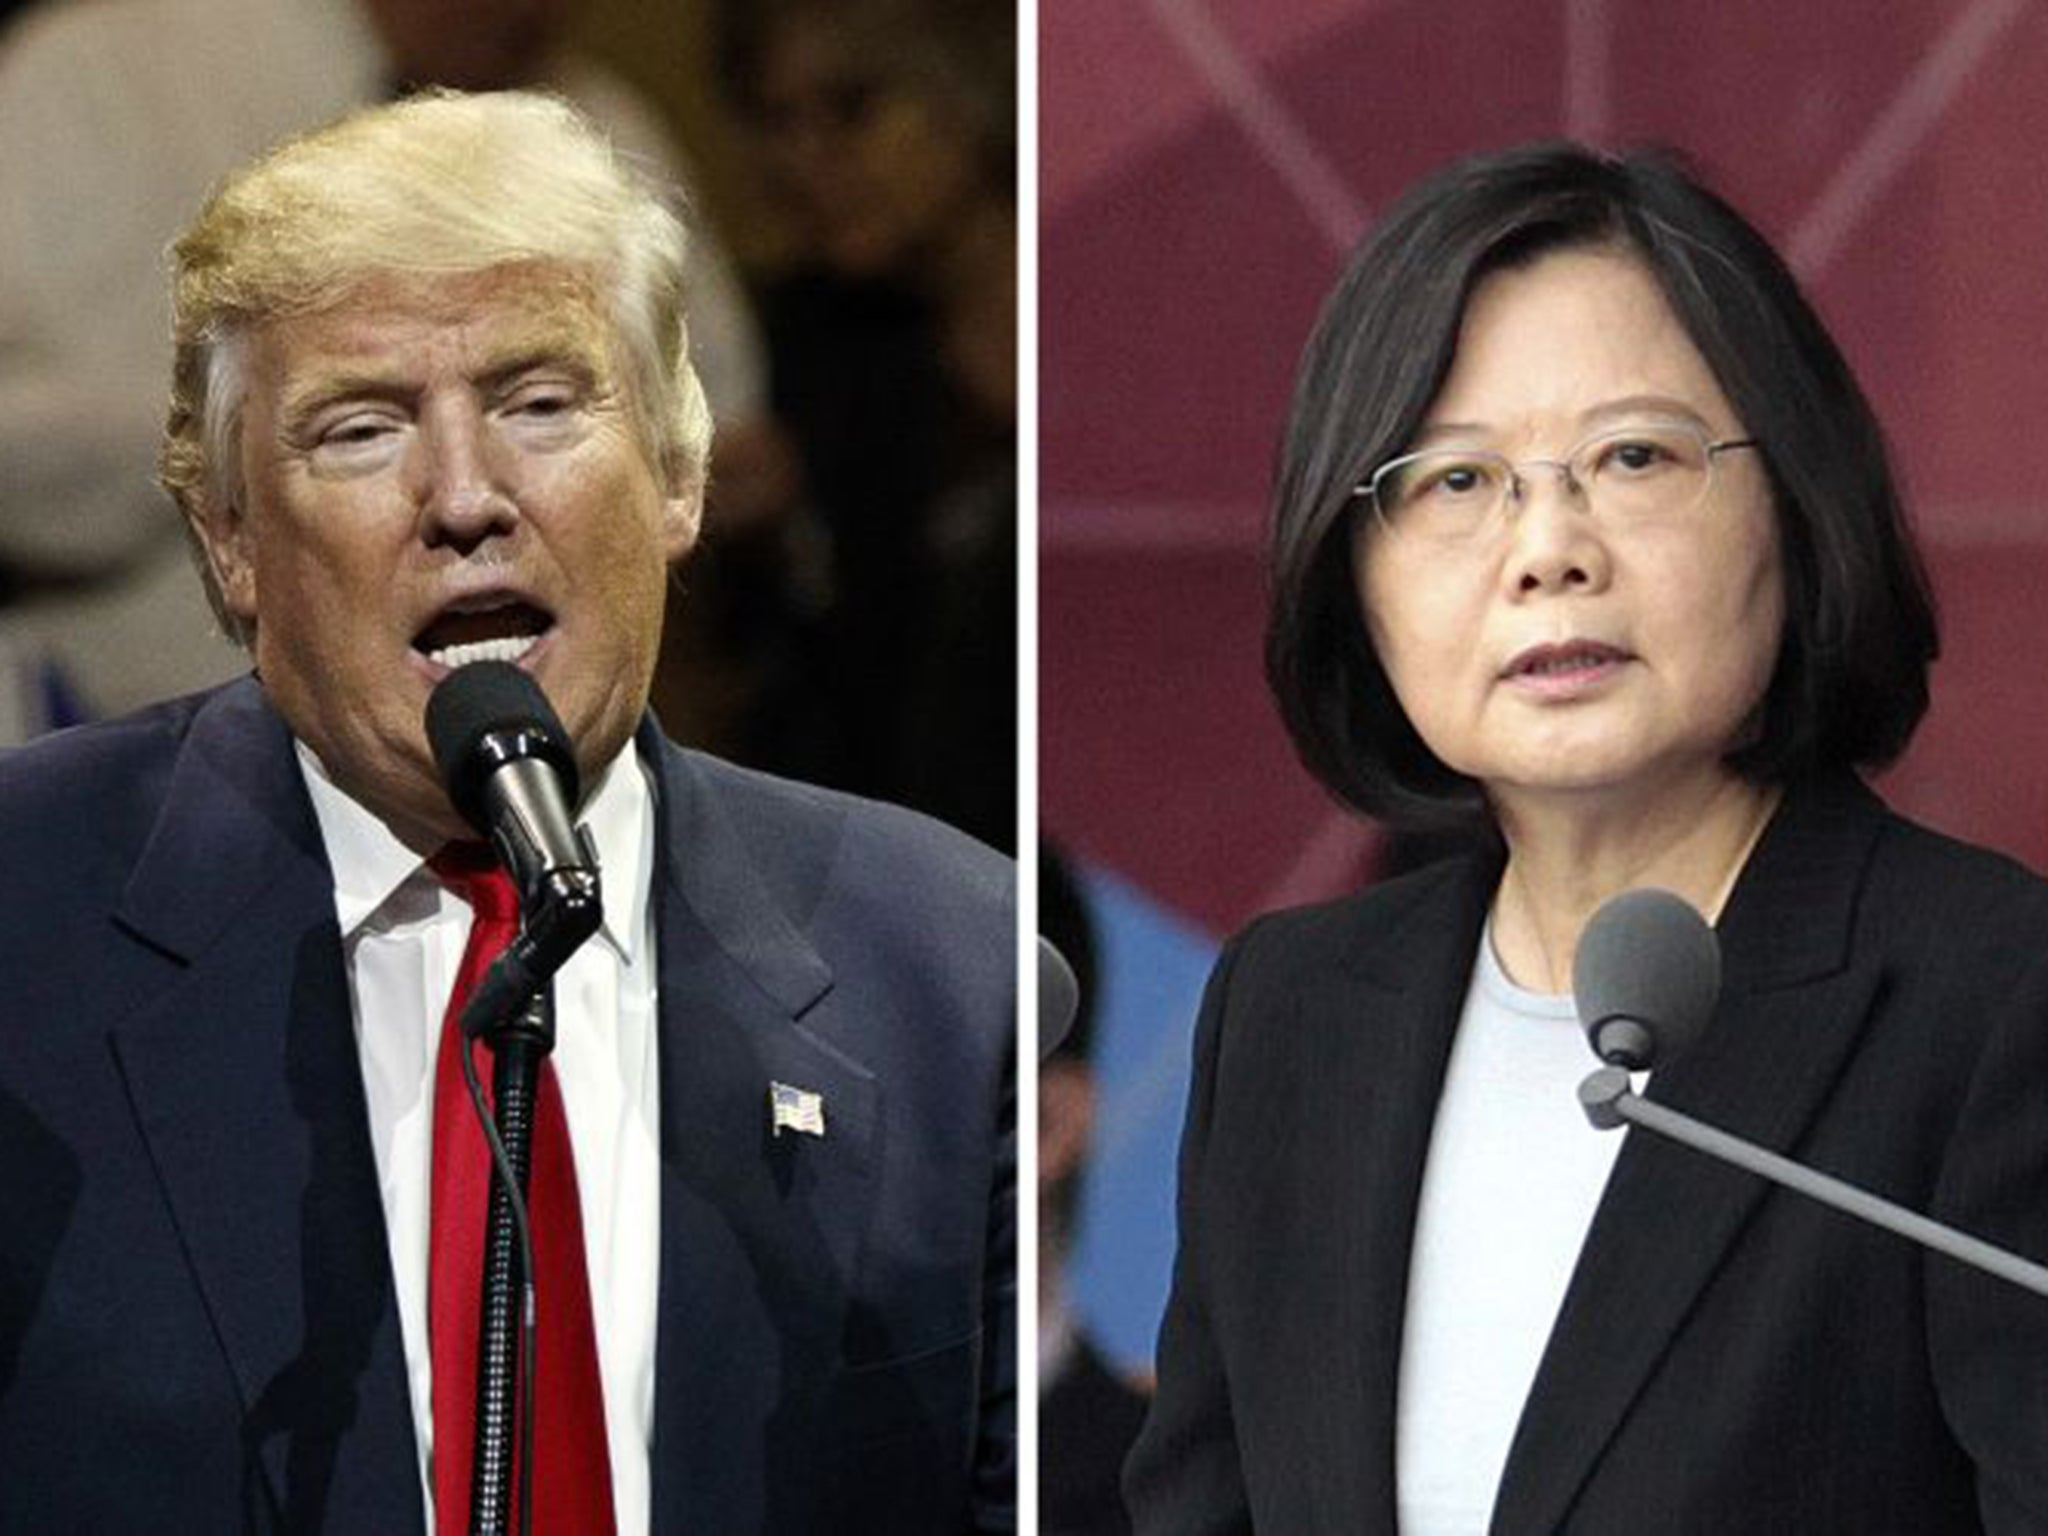 China issues diplomatic protest against Donald Trump for phone call to Taiwan president